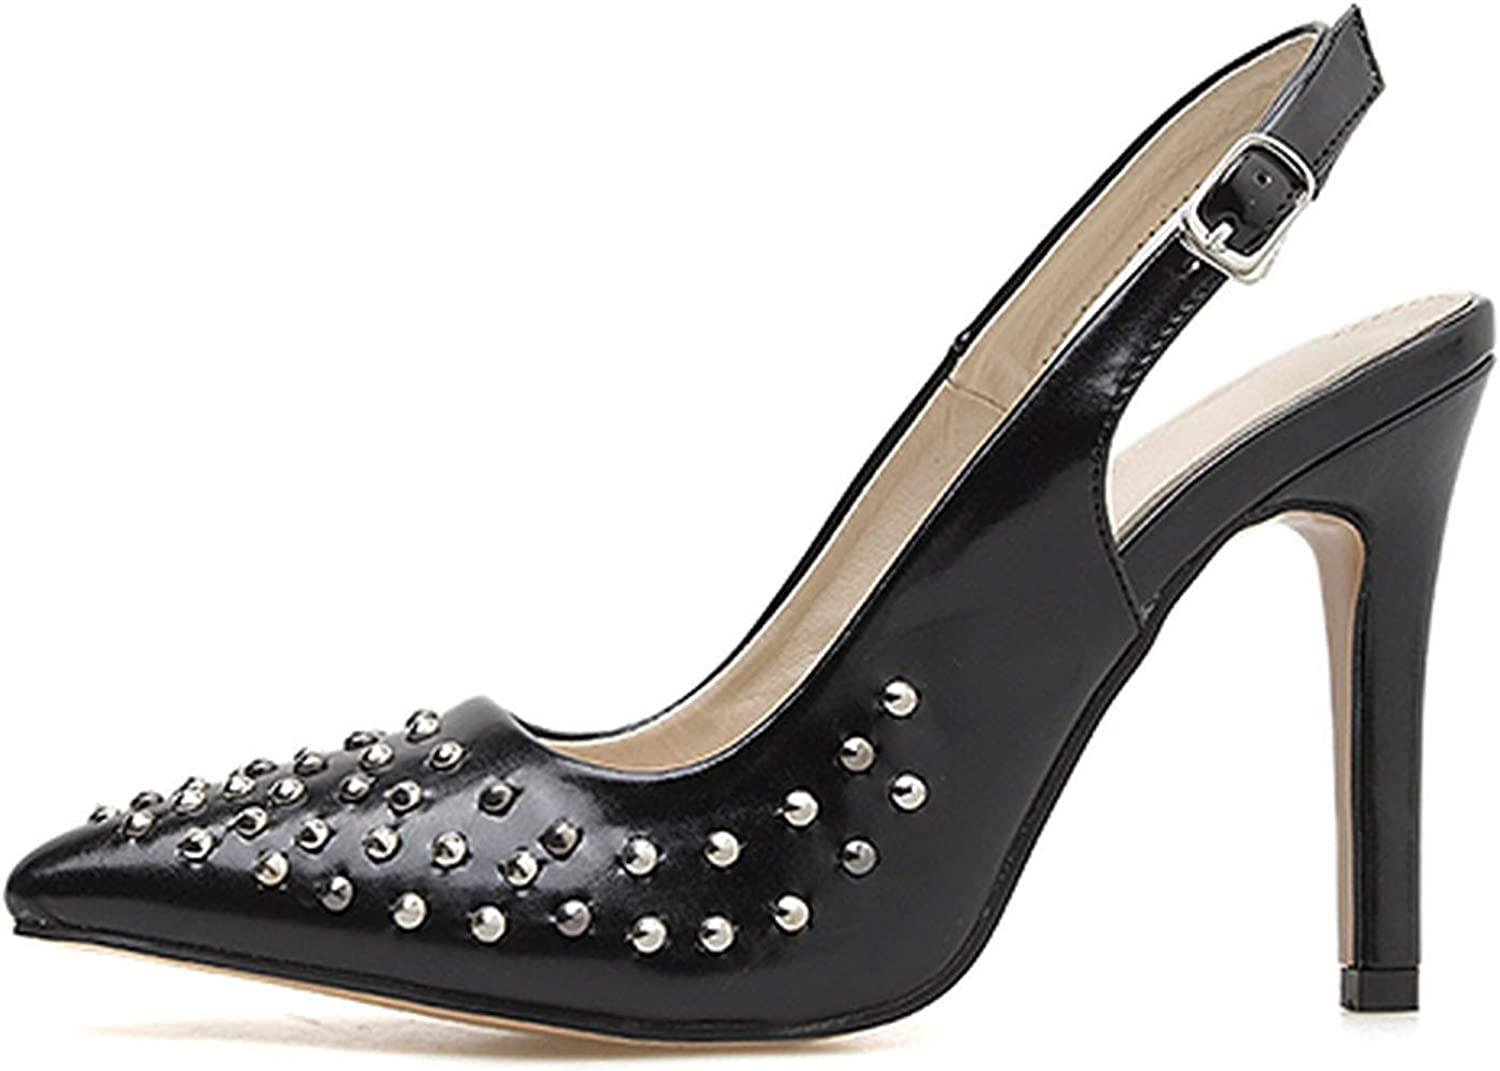 FINDYOU Classic Buckle Strap shoes Ladies Sexy Pointed Toe Pumps Rivet Black Heels shoes Women shoes